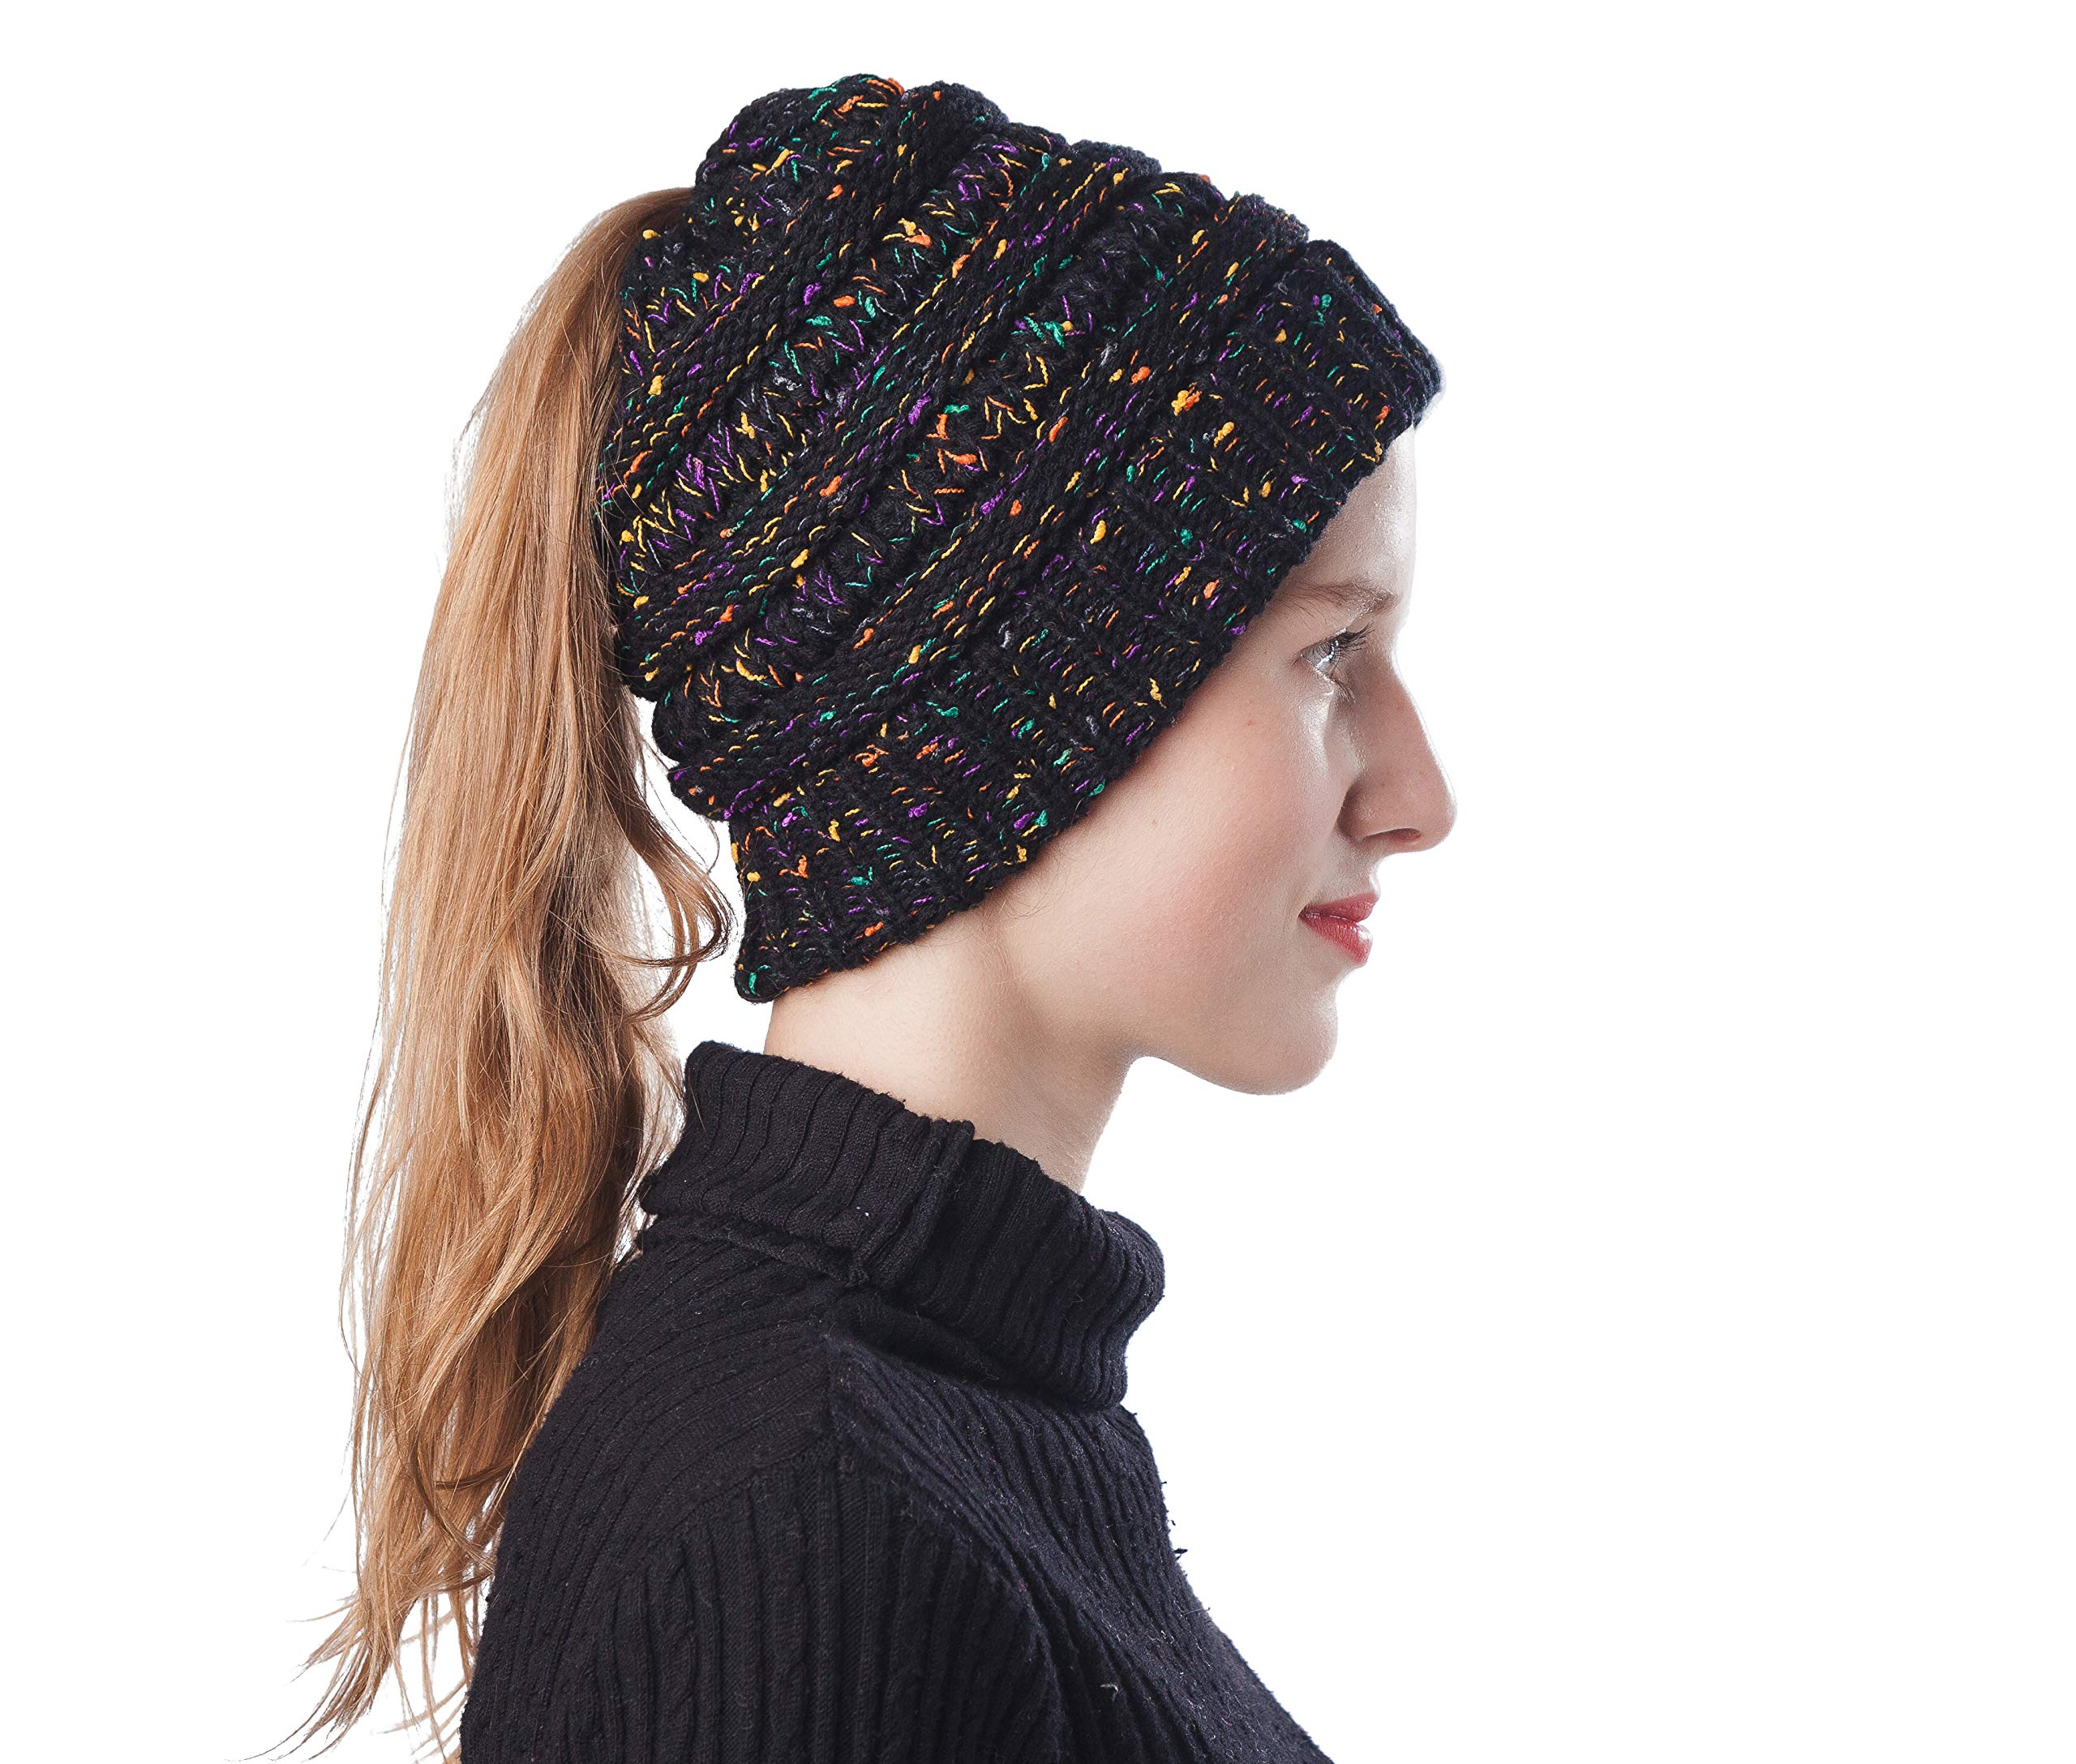 Soft Stretch Cable Knit High Bun Ponytail Winter Women Warm Beanie Hat Messy Beanie Cap (Confetti Black)